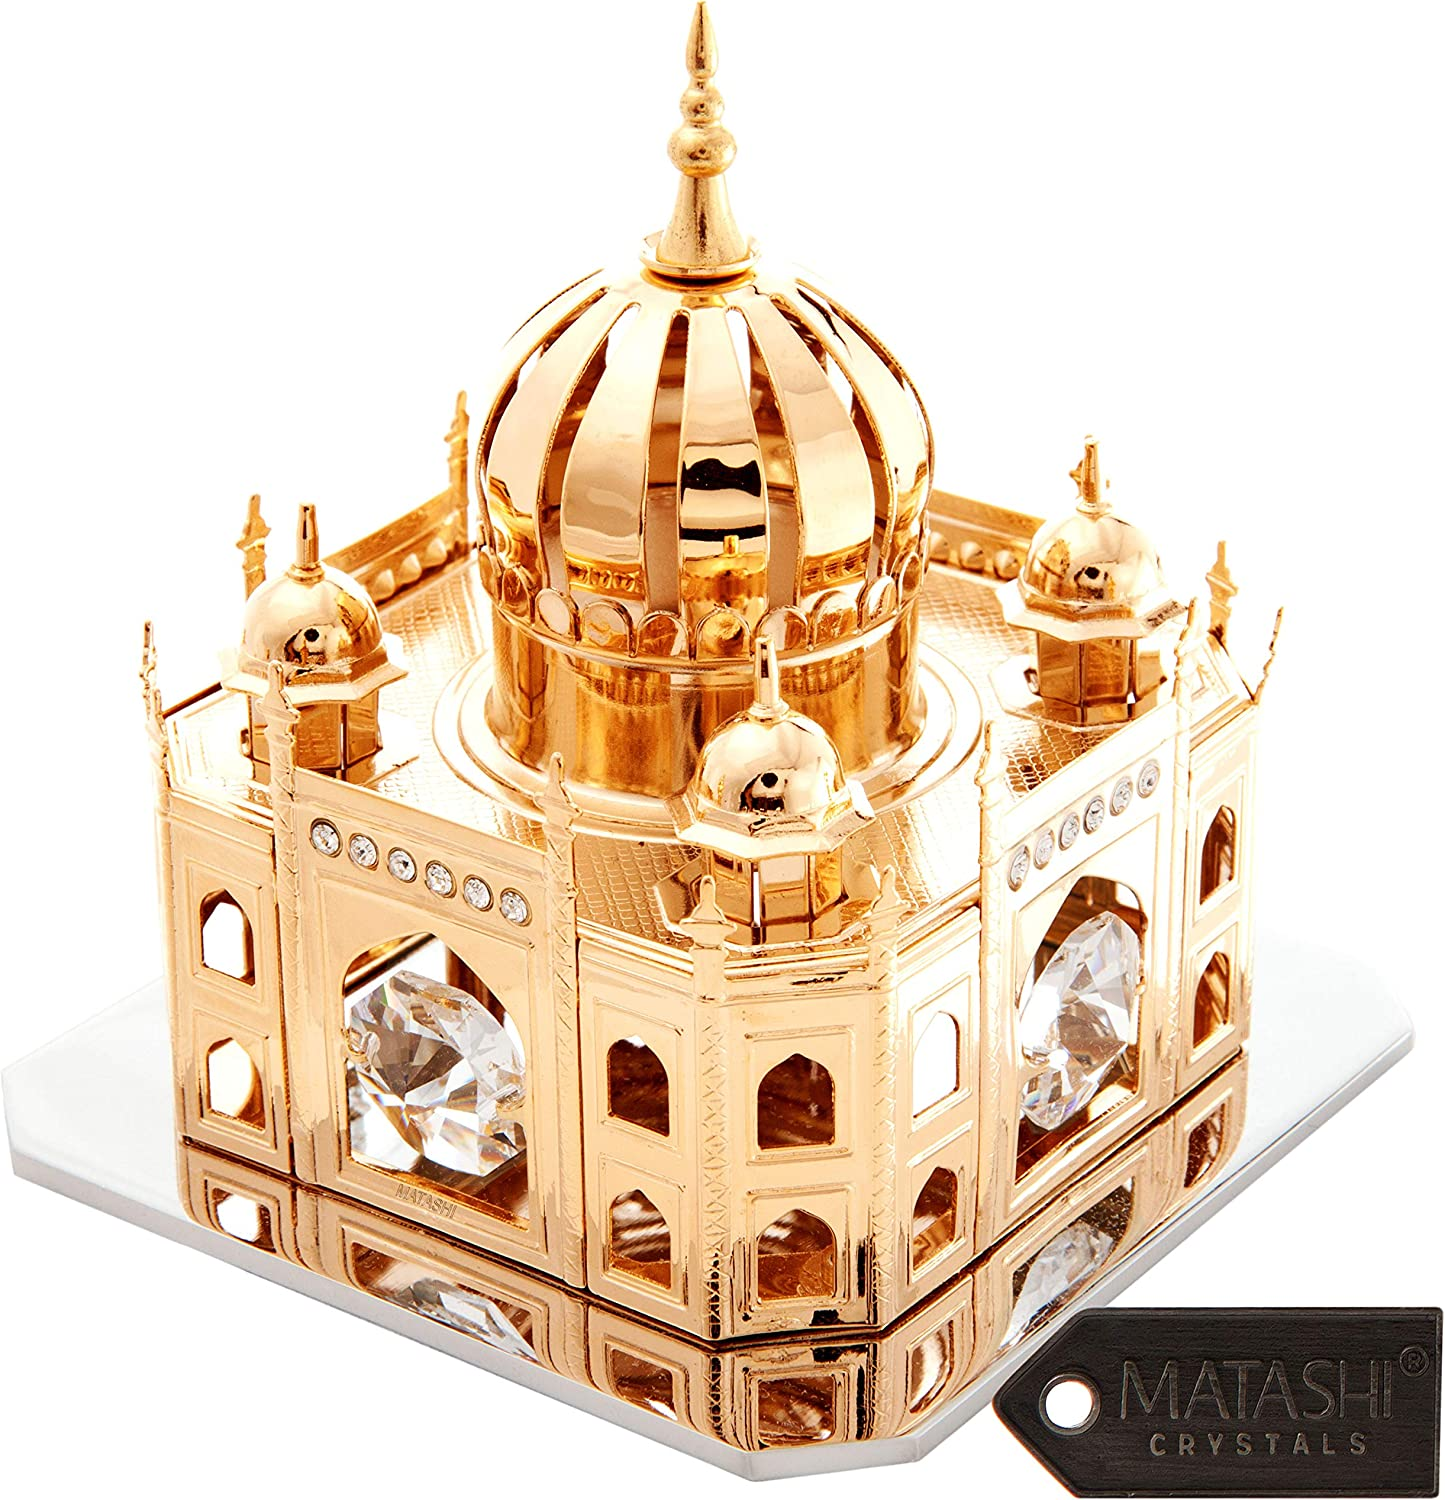 Matashi 24K Gold Plated Mosque Ornament with Crystals Tabletop Centerpiece Showpiece - Great Gift for Anniversary Mother's Day Birthday Christmas Decor